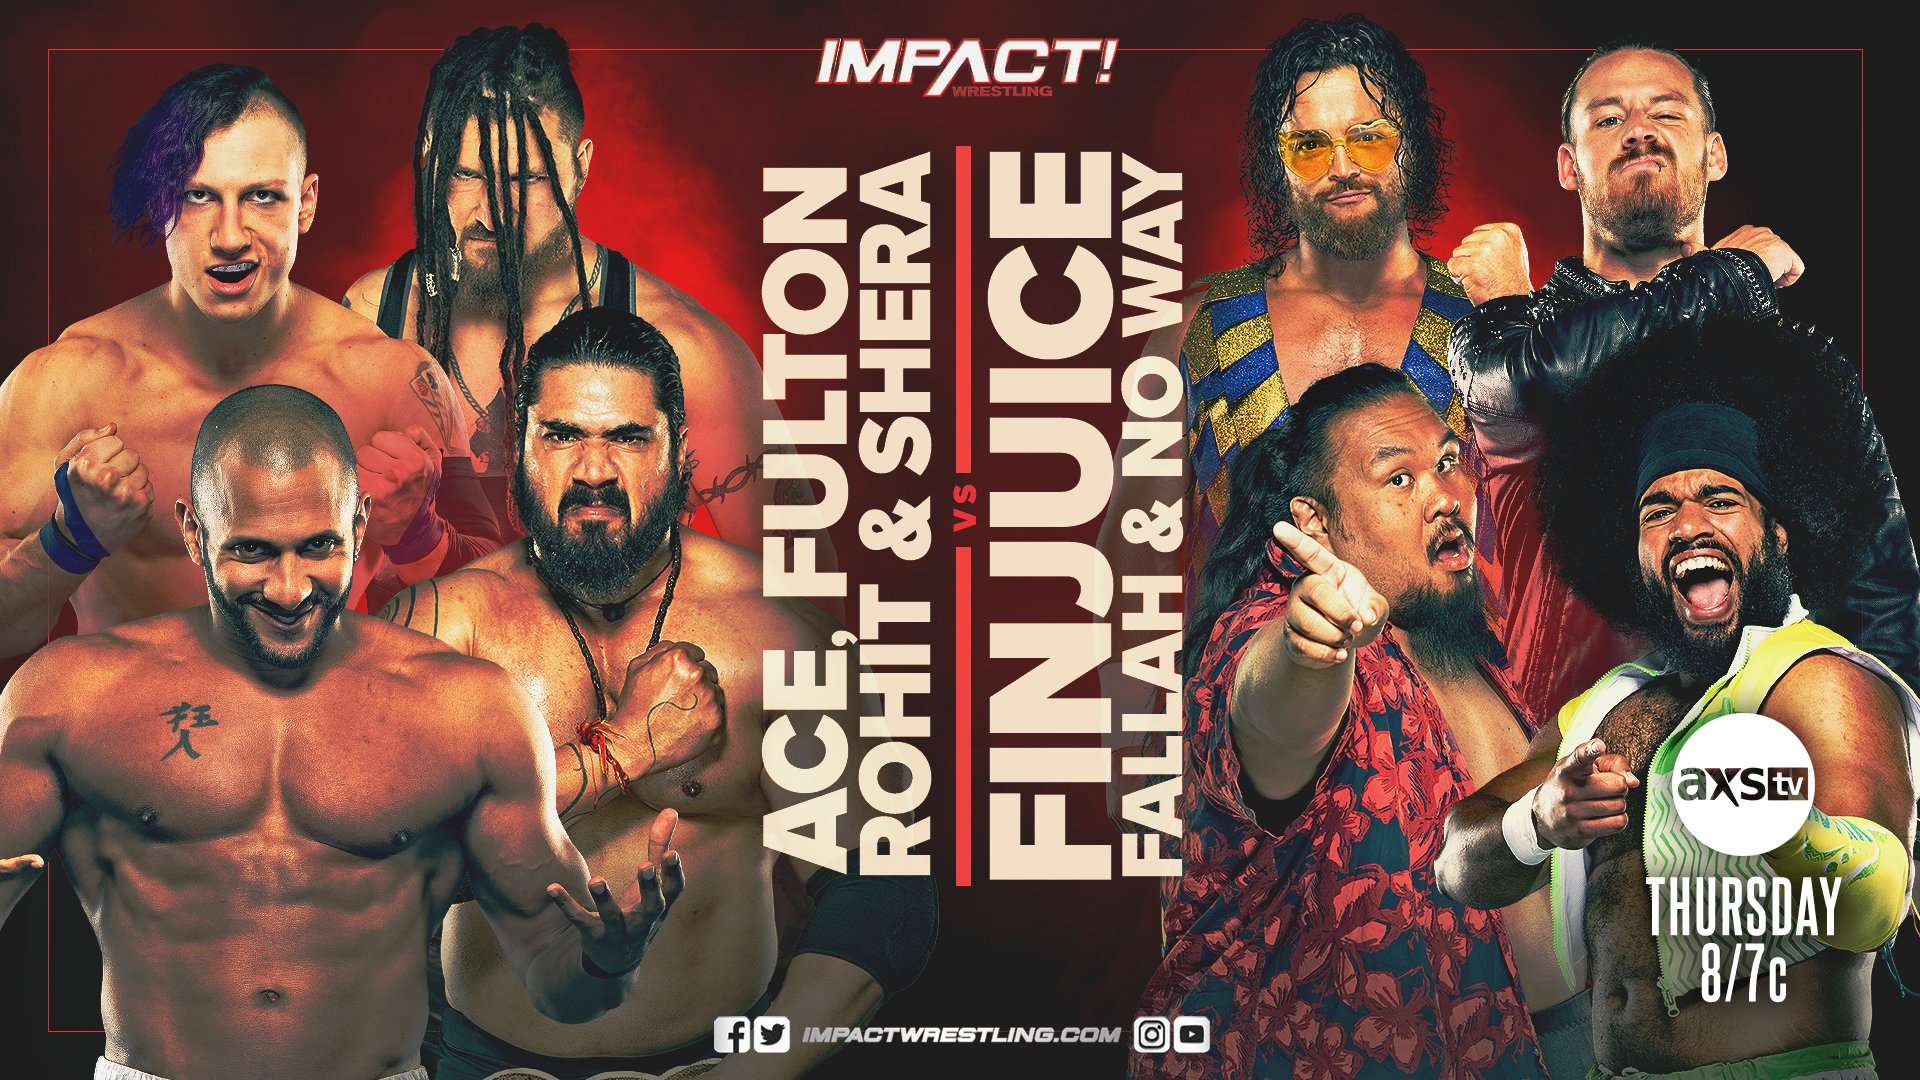 Eight-Man Tag Team Match Announced For Impact Wrestling